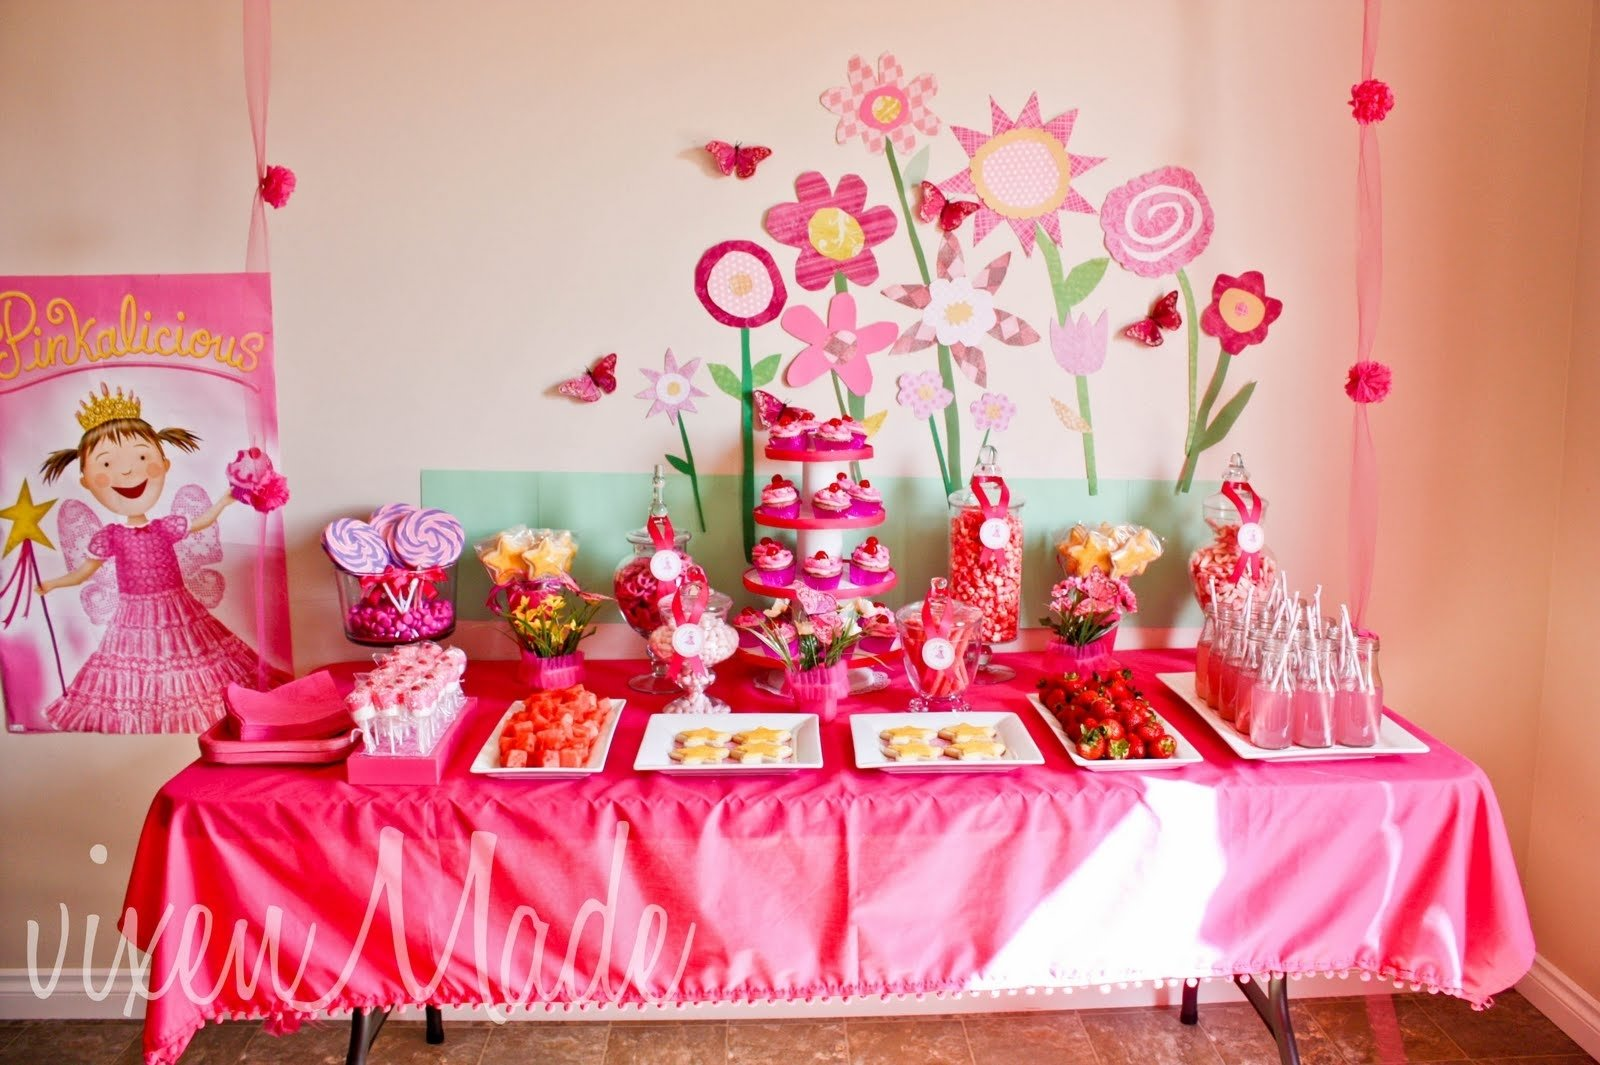 10 Unique 9 Yr Old Girl Birthday Party Ideas 50 birthday party themes for girls i heart nap time 21